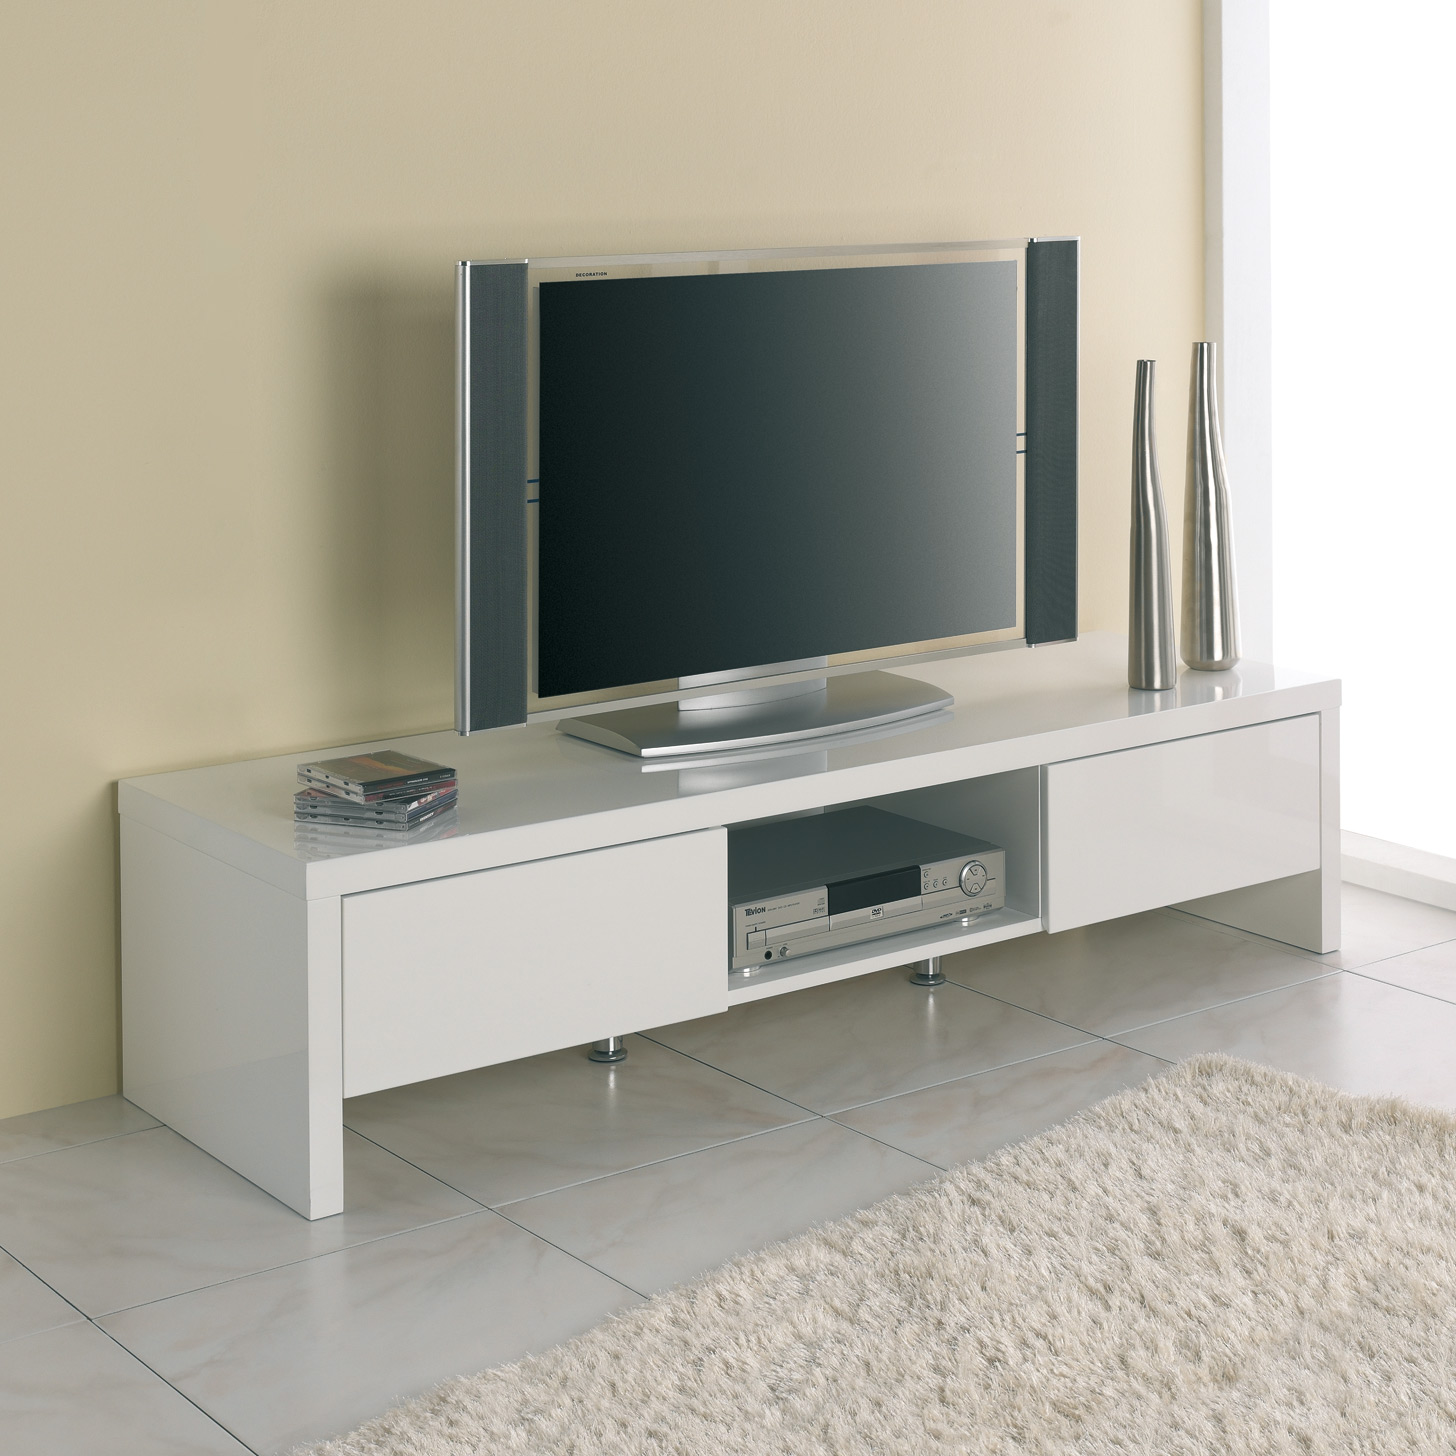 meuble tv 1 metre de hauteur royal sofa id e de canap et meuble maison. Black Bedroom Furniture Sets. Home Design Ideas